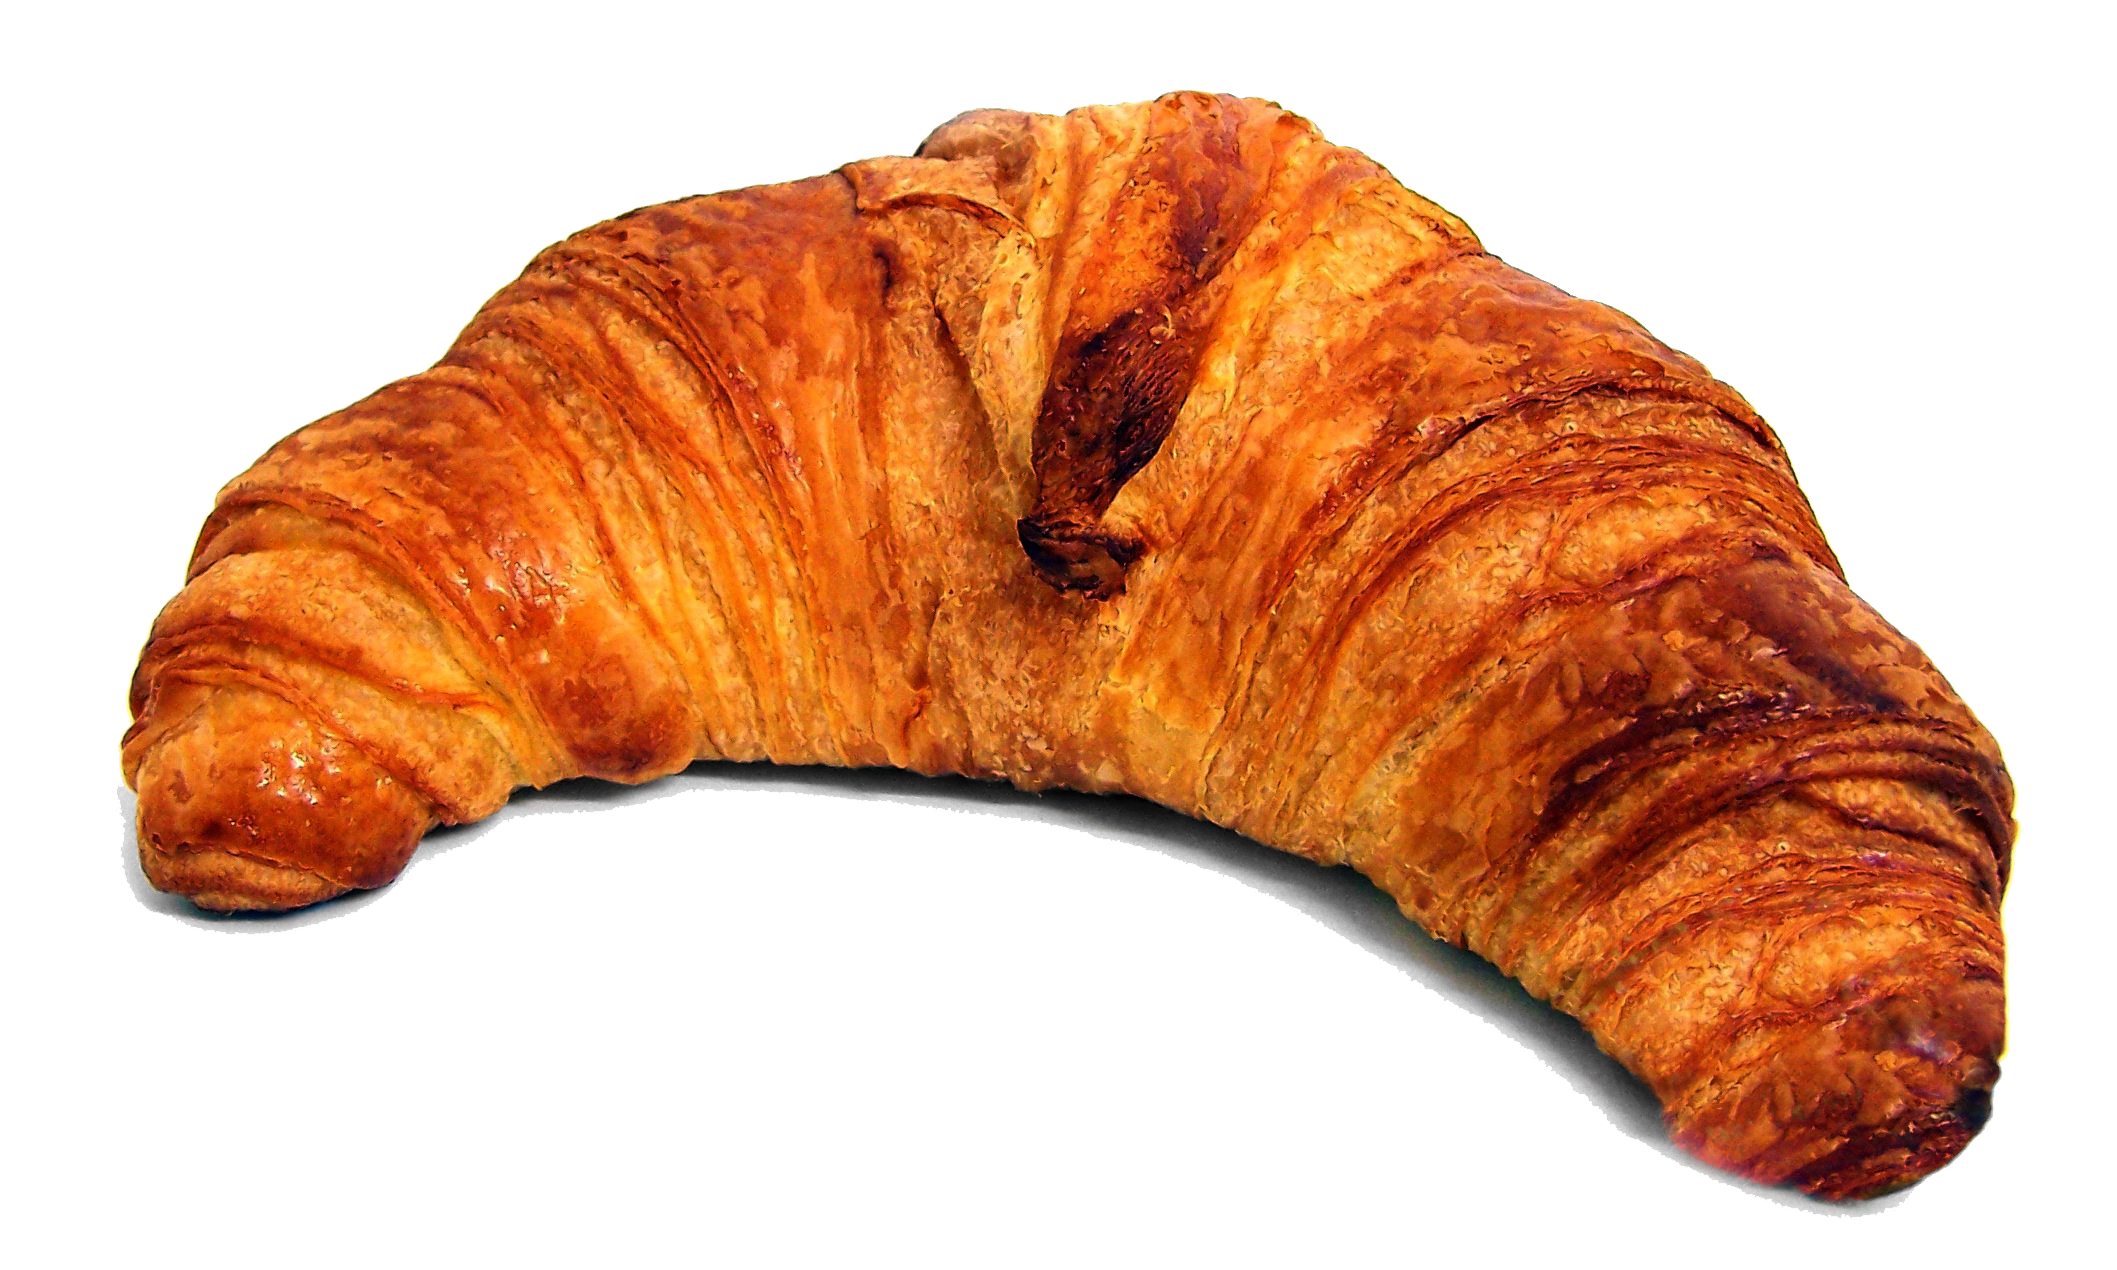 Croissant PNG images free download.